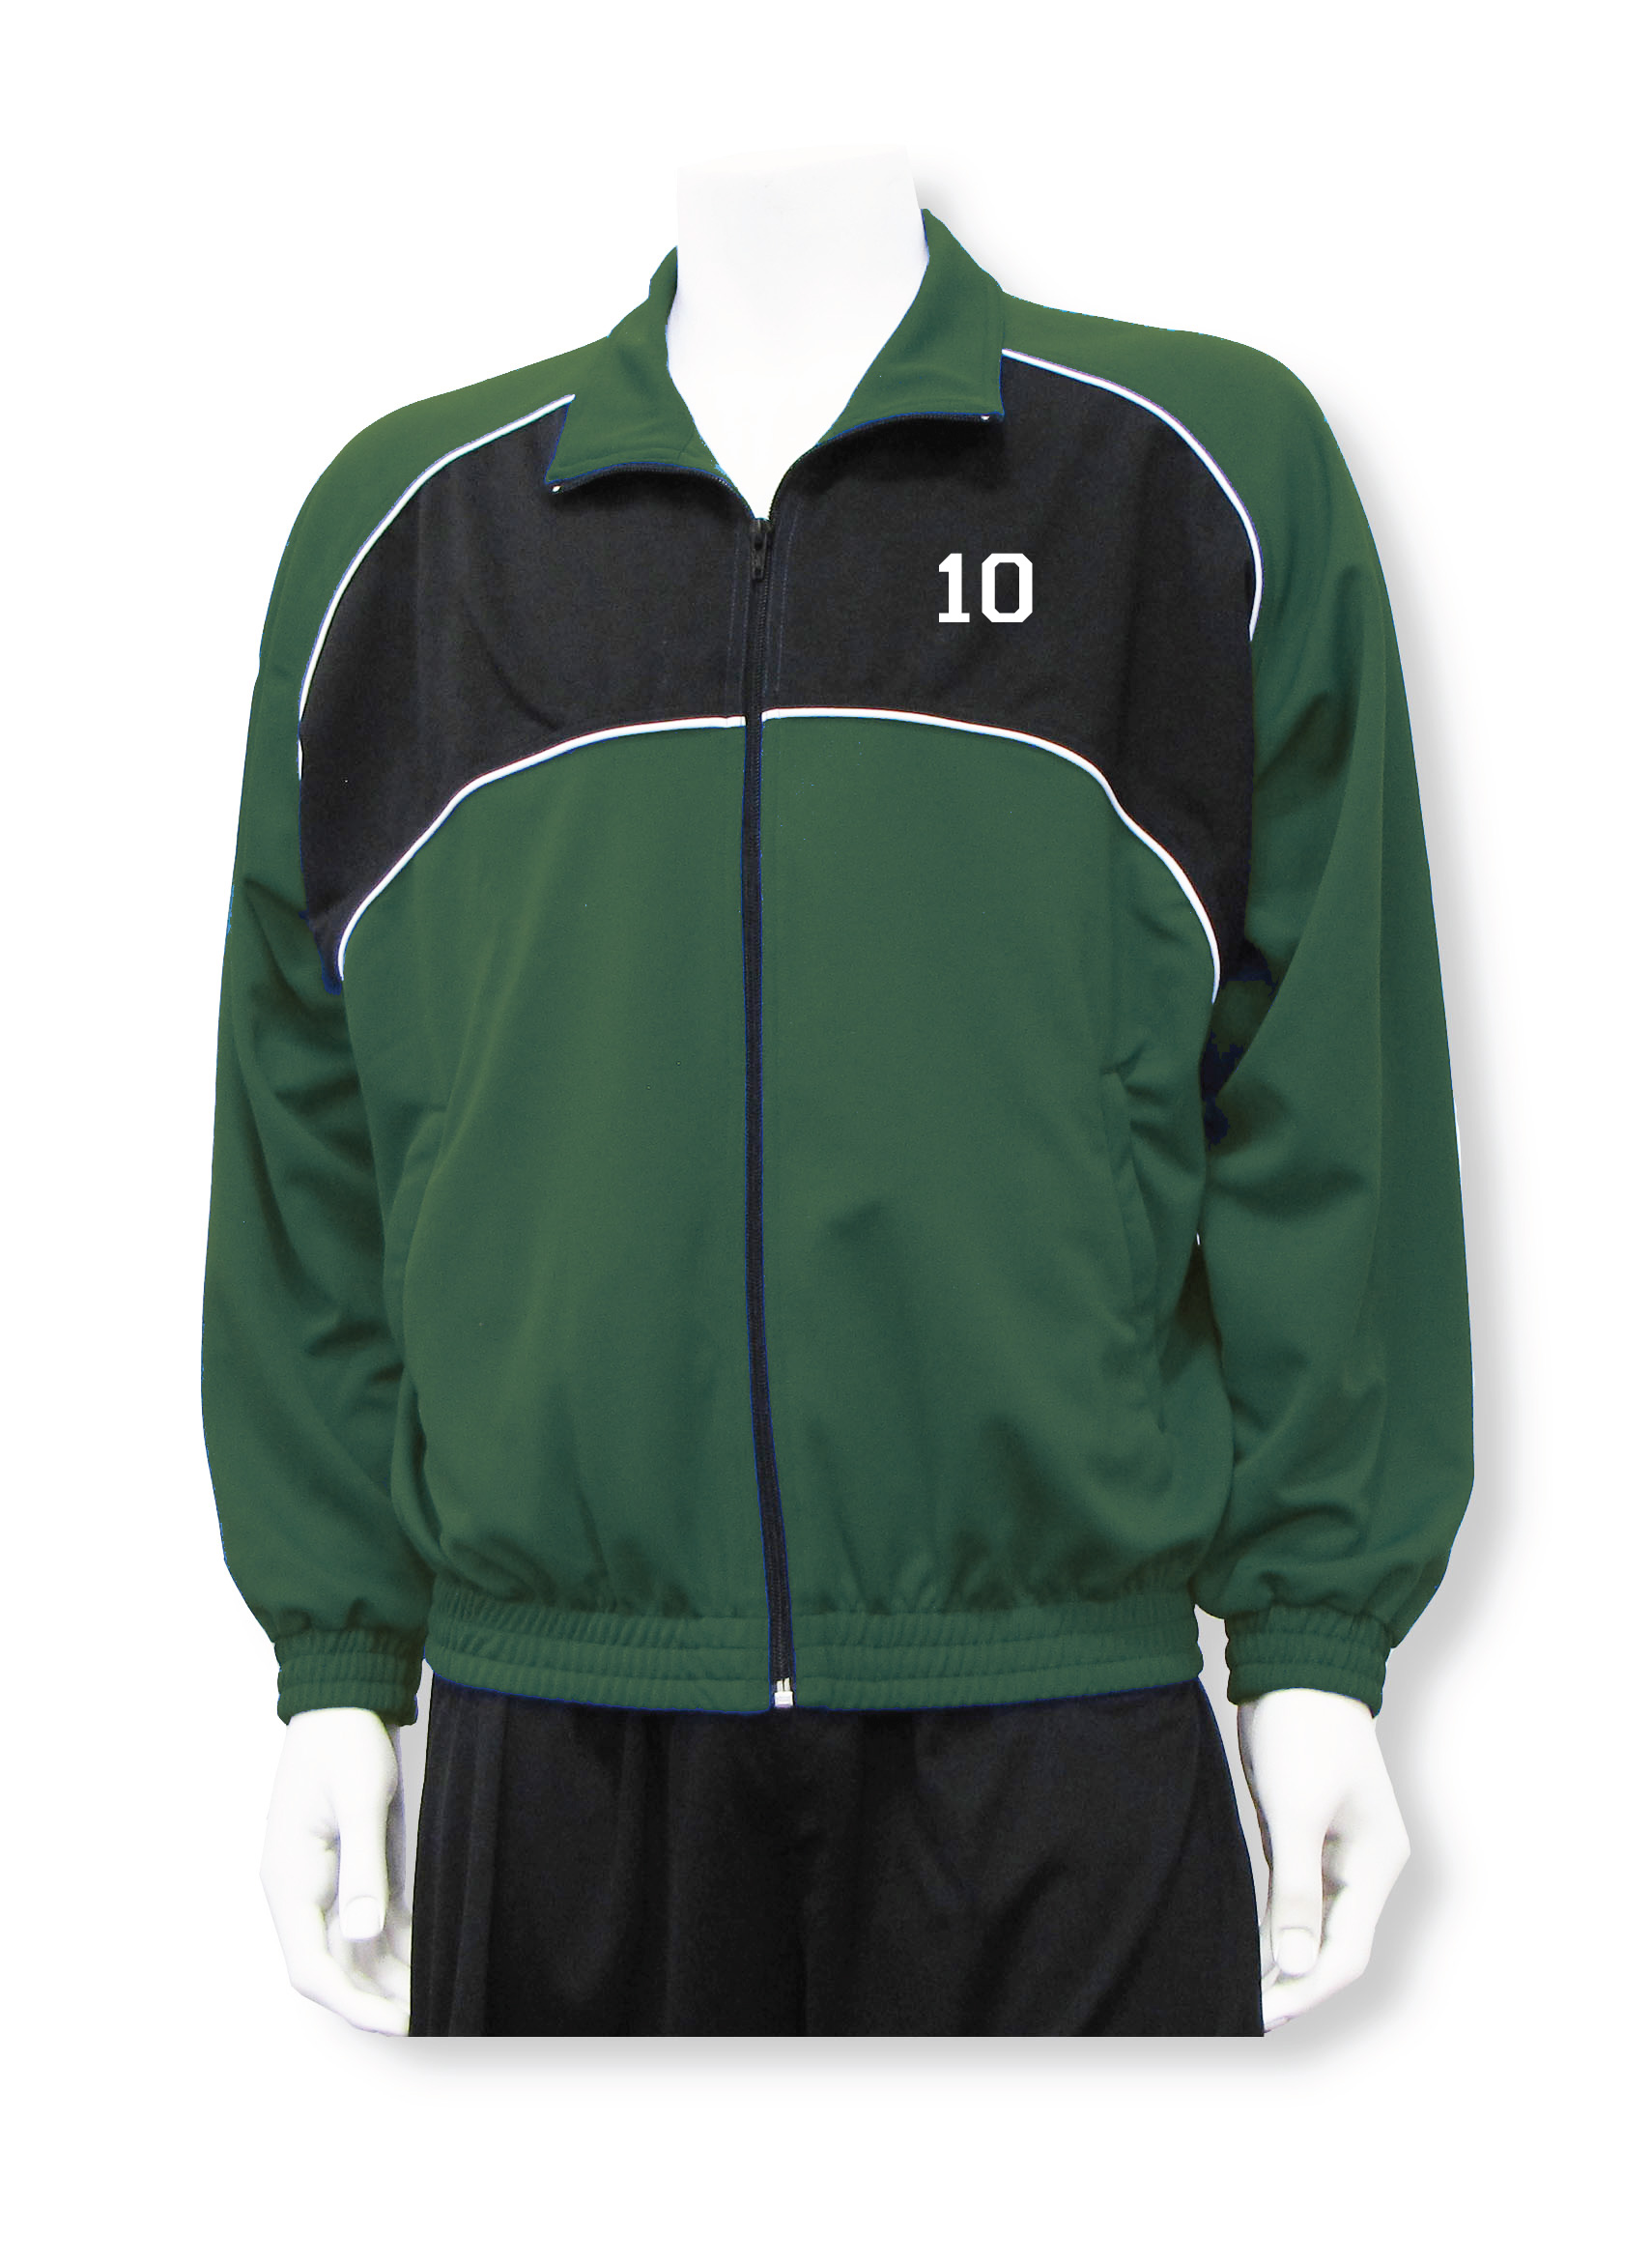 Crossfire soccer warm up jacket in forest/black with number by Code Four Athletics